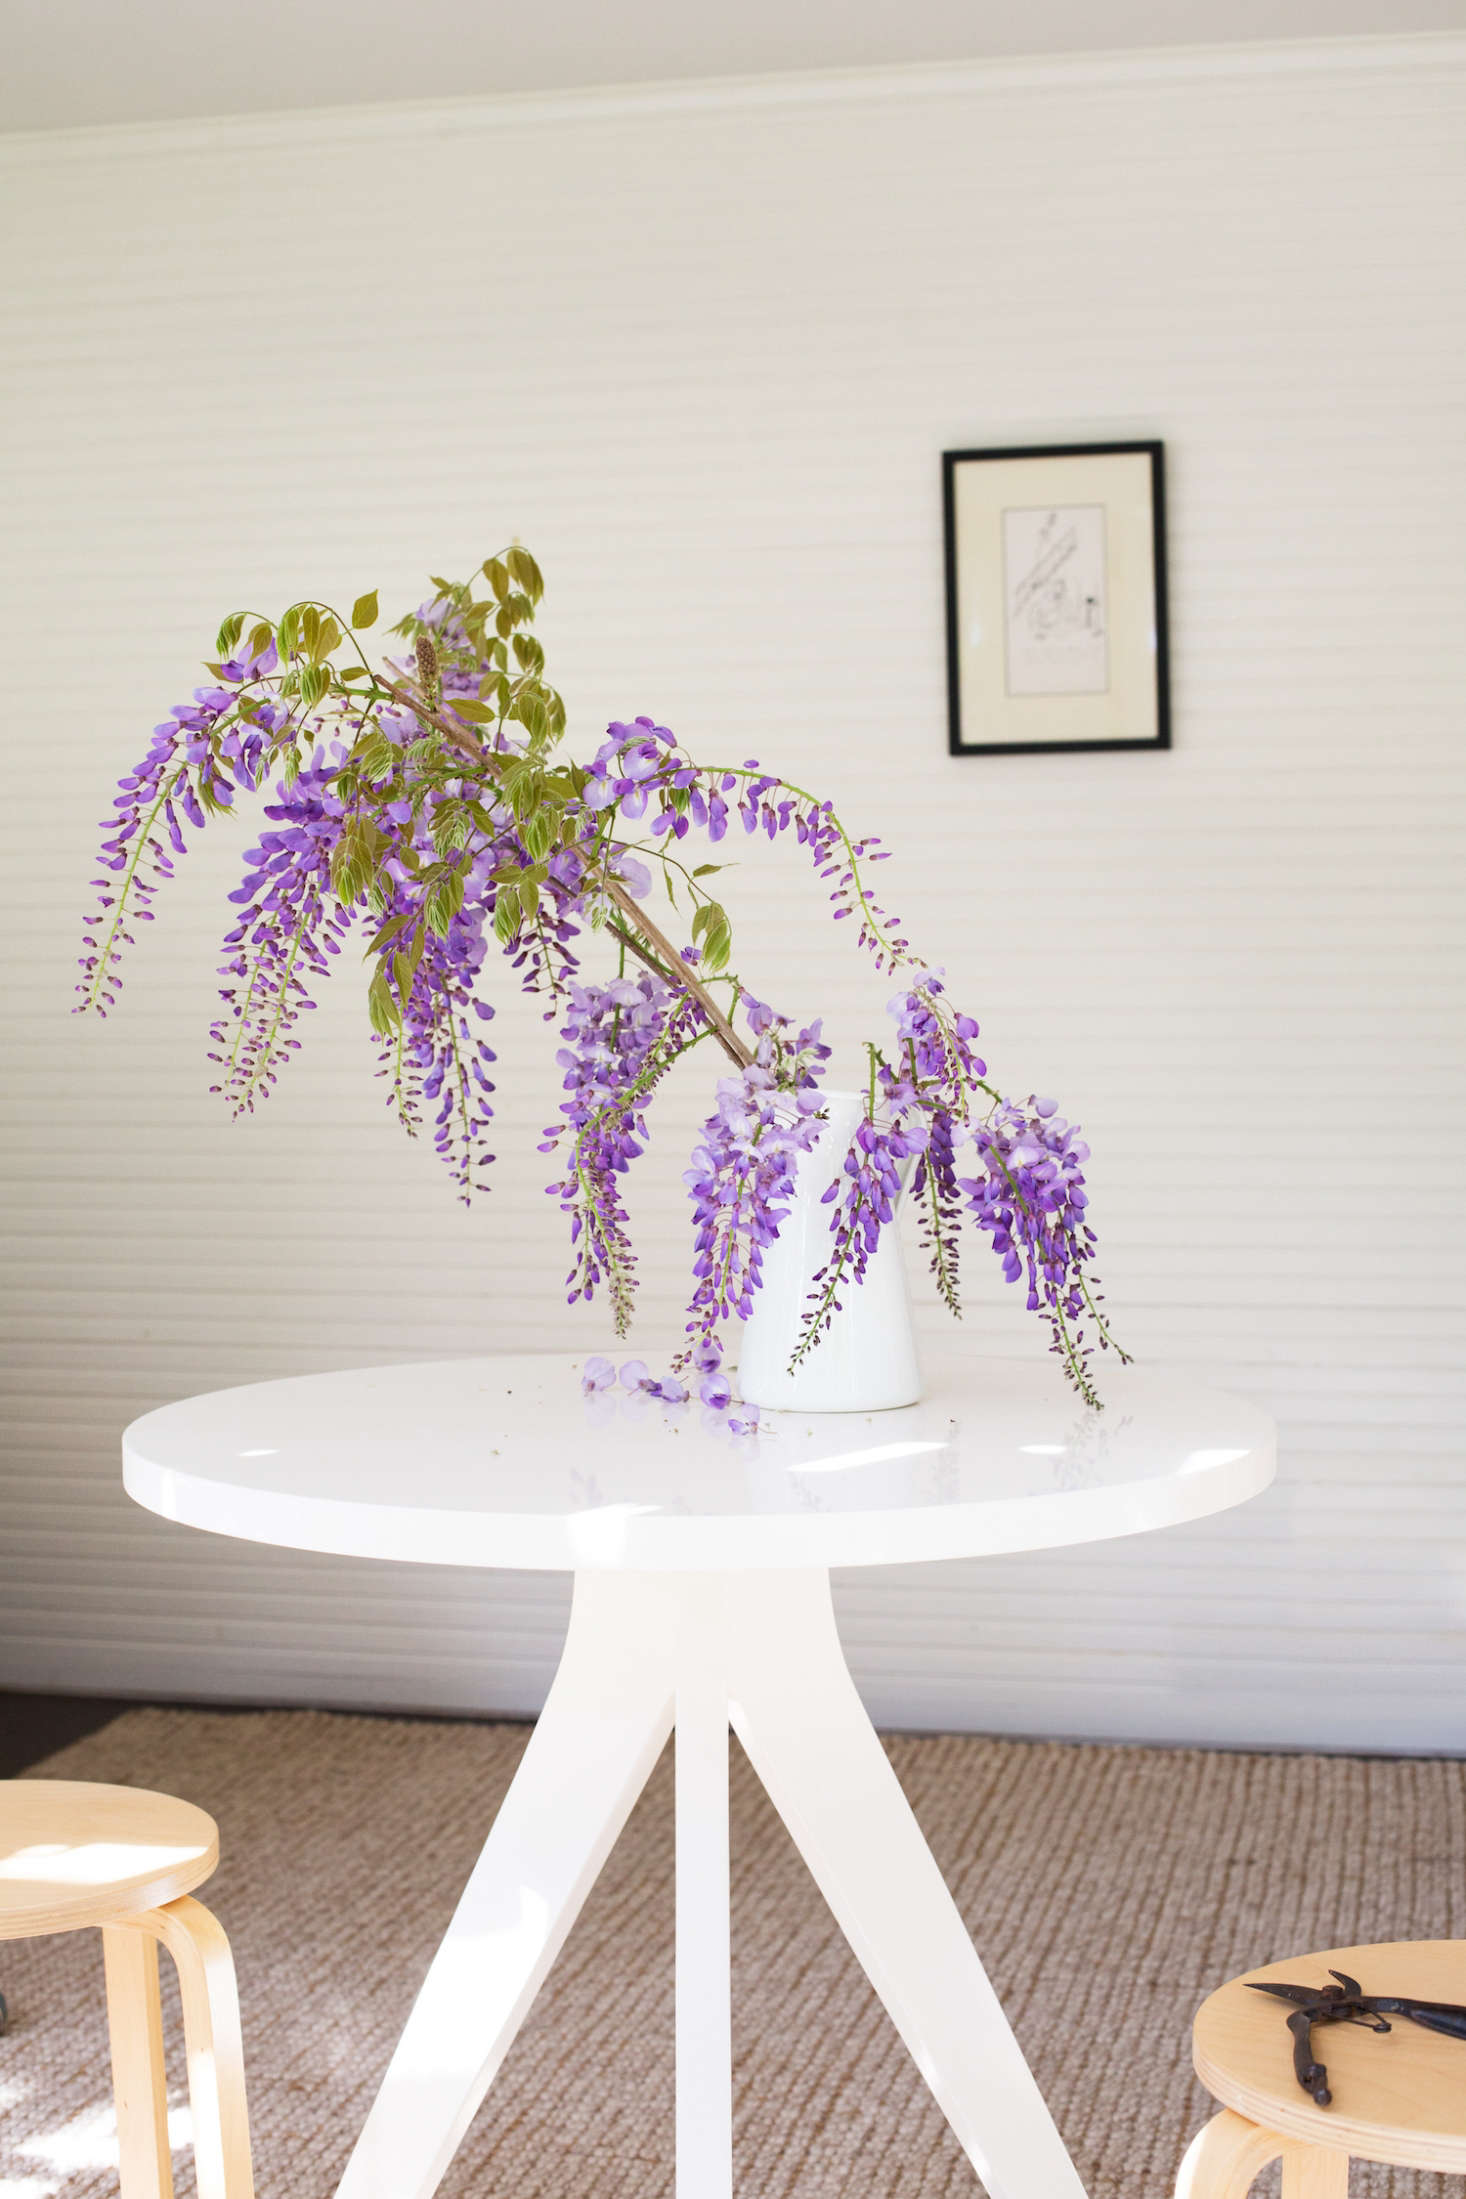 For more, see Mysterious Wisteria: An Irresistible Flower Goes from Vine to Vase. Photograph by Mimi Giboin.